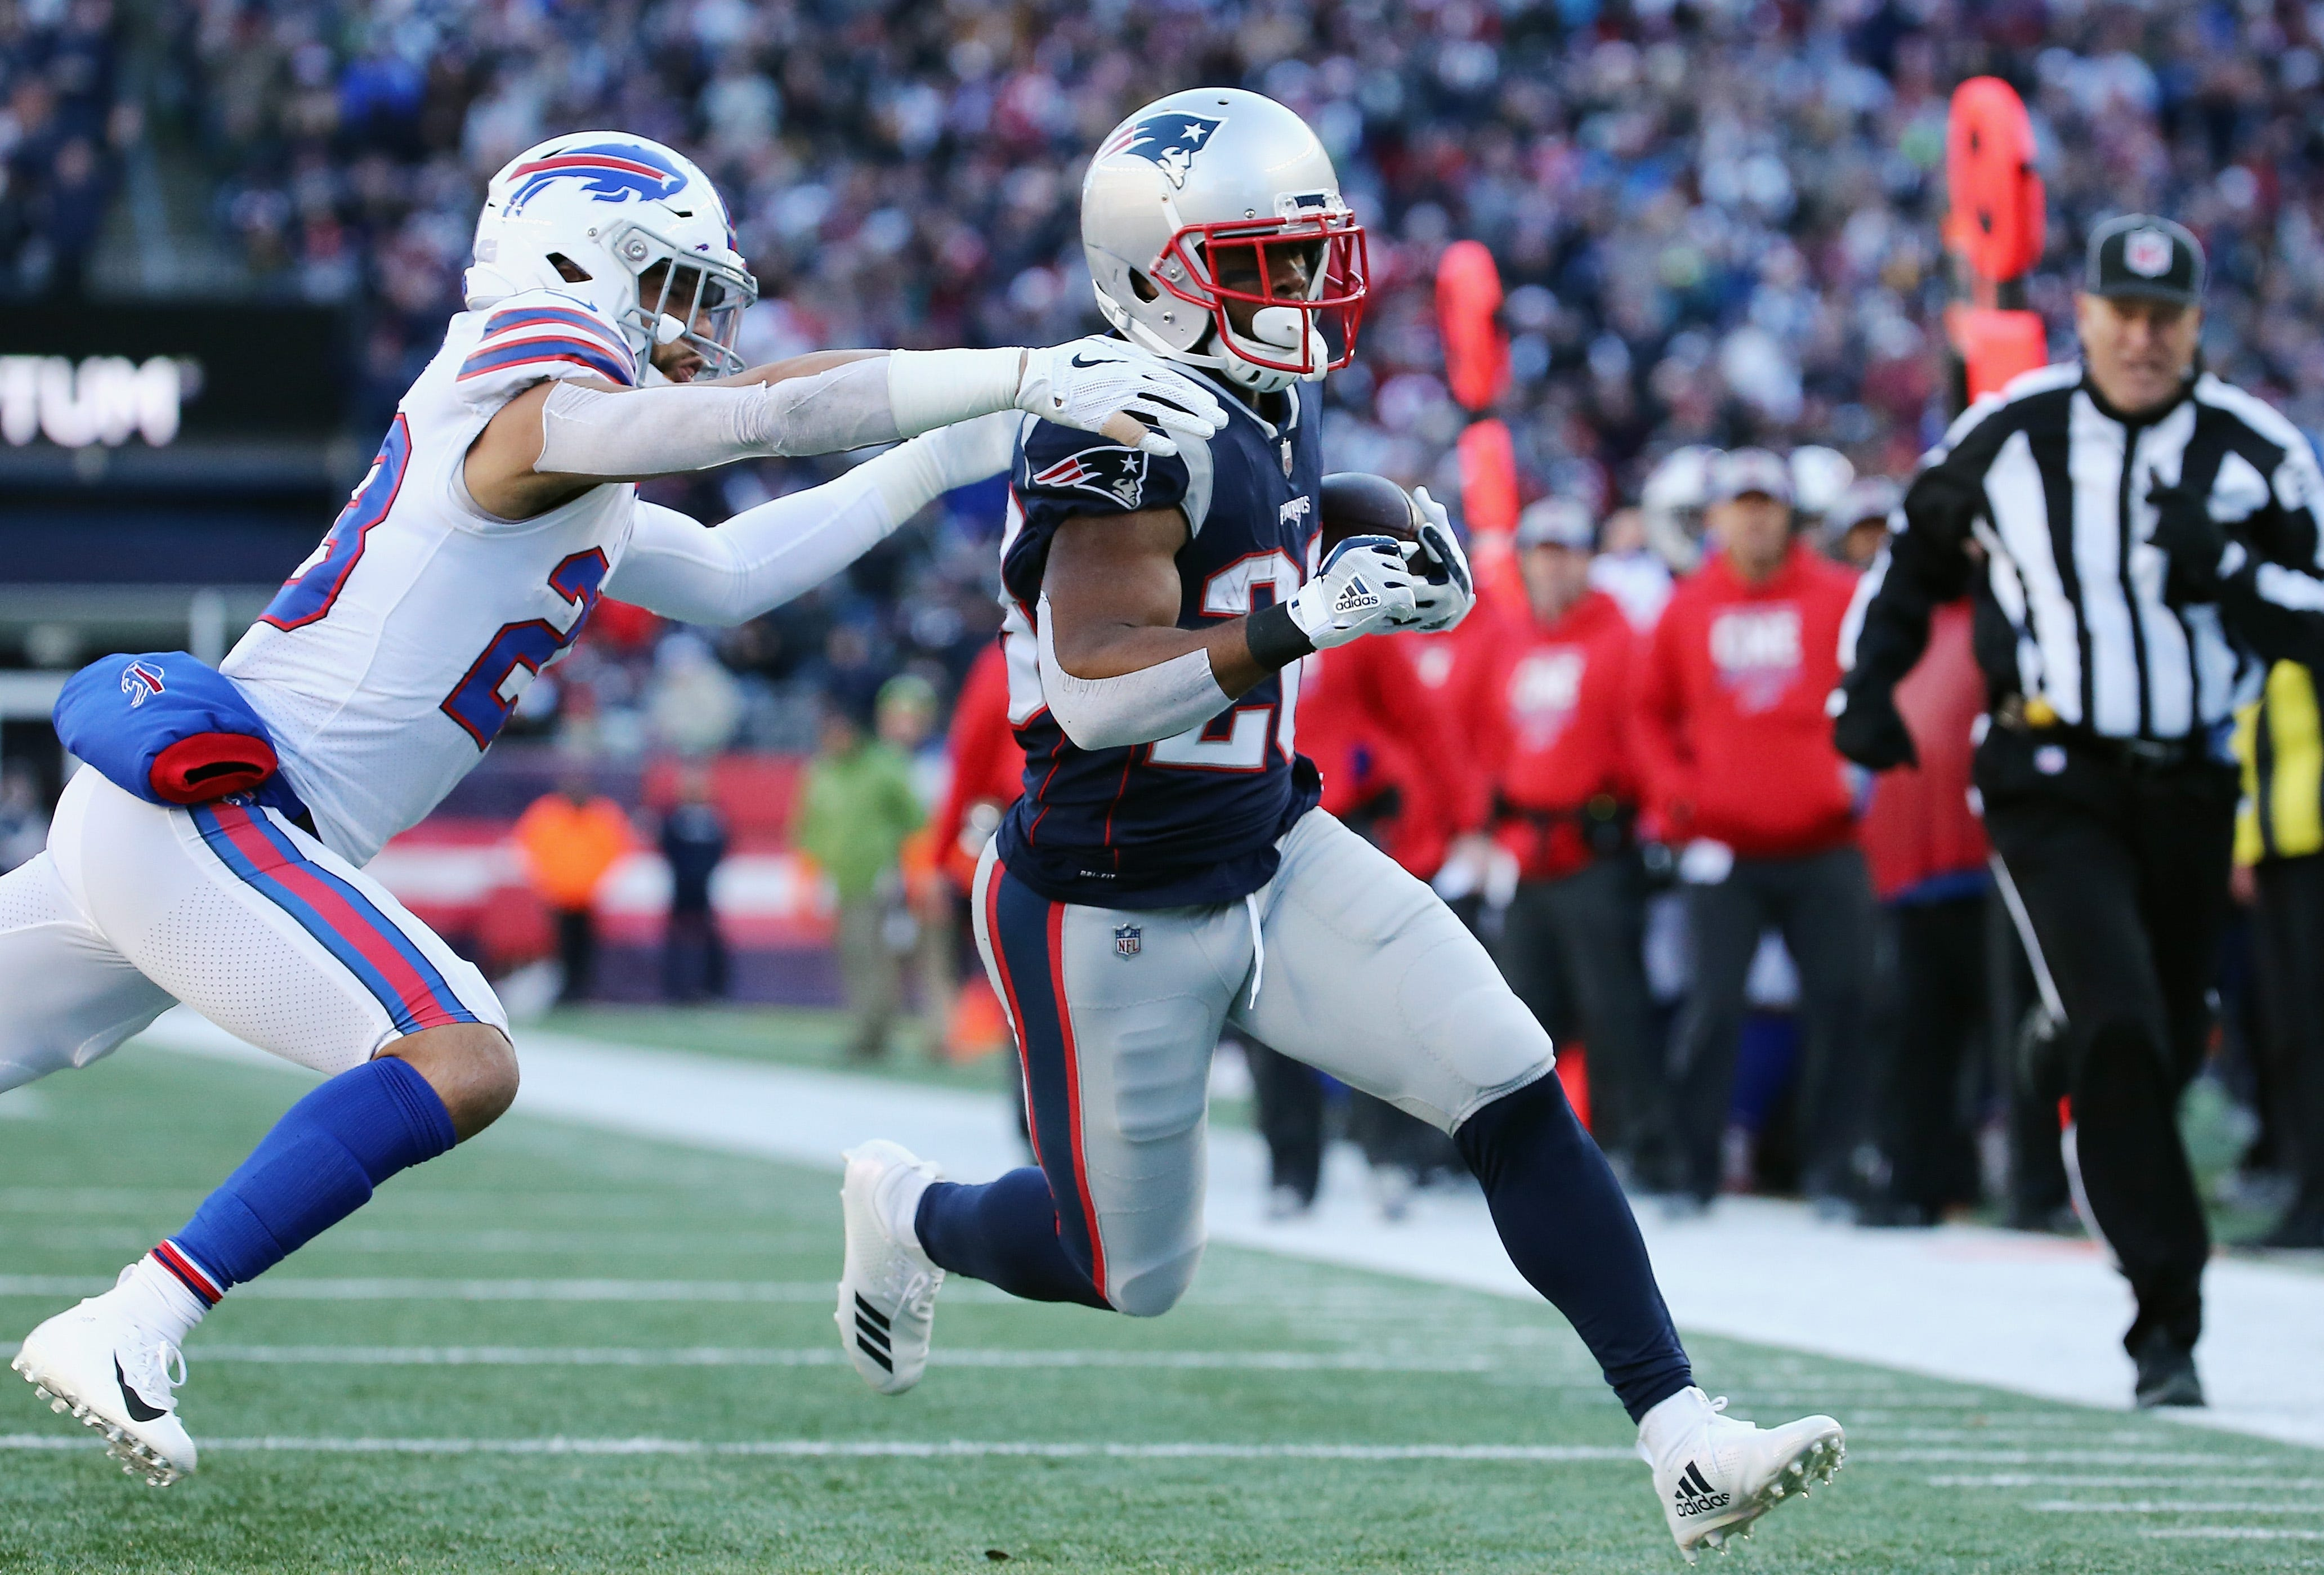 Patriots extend own record with 10th consecutive AFC East title